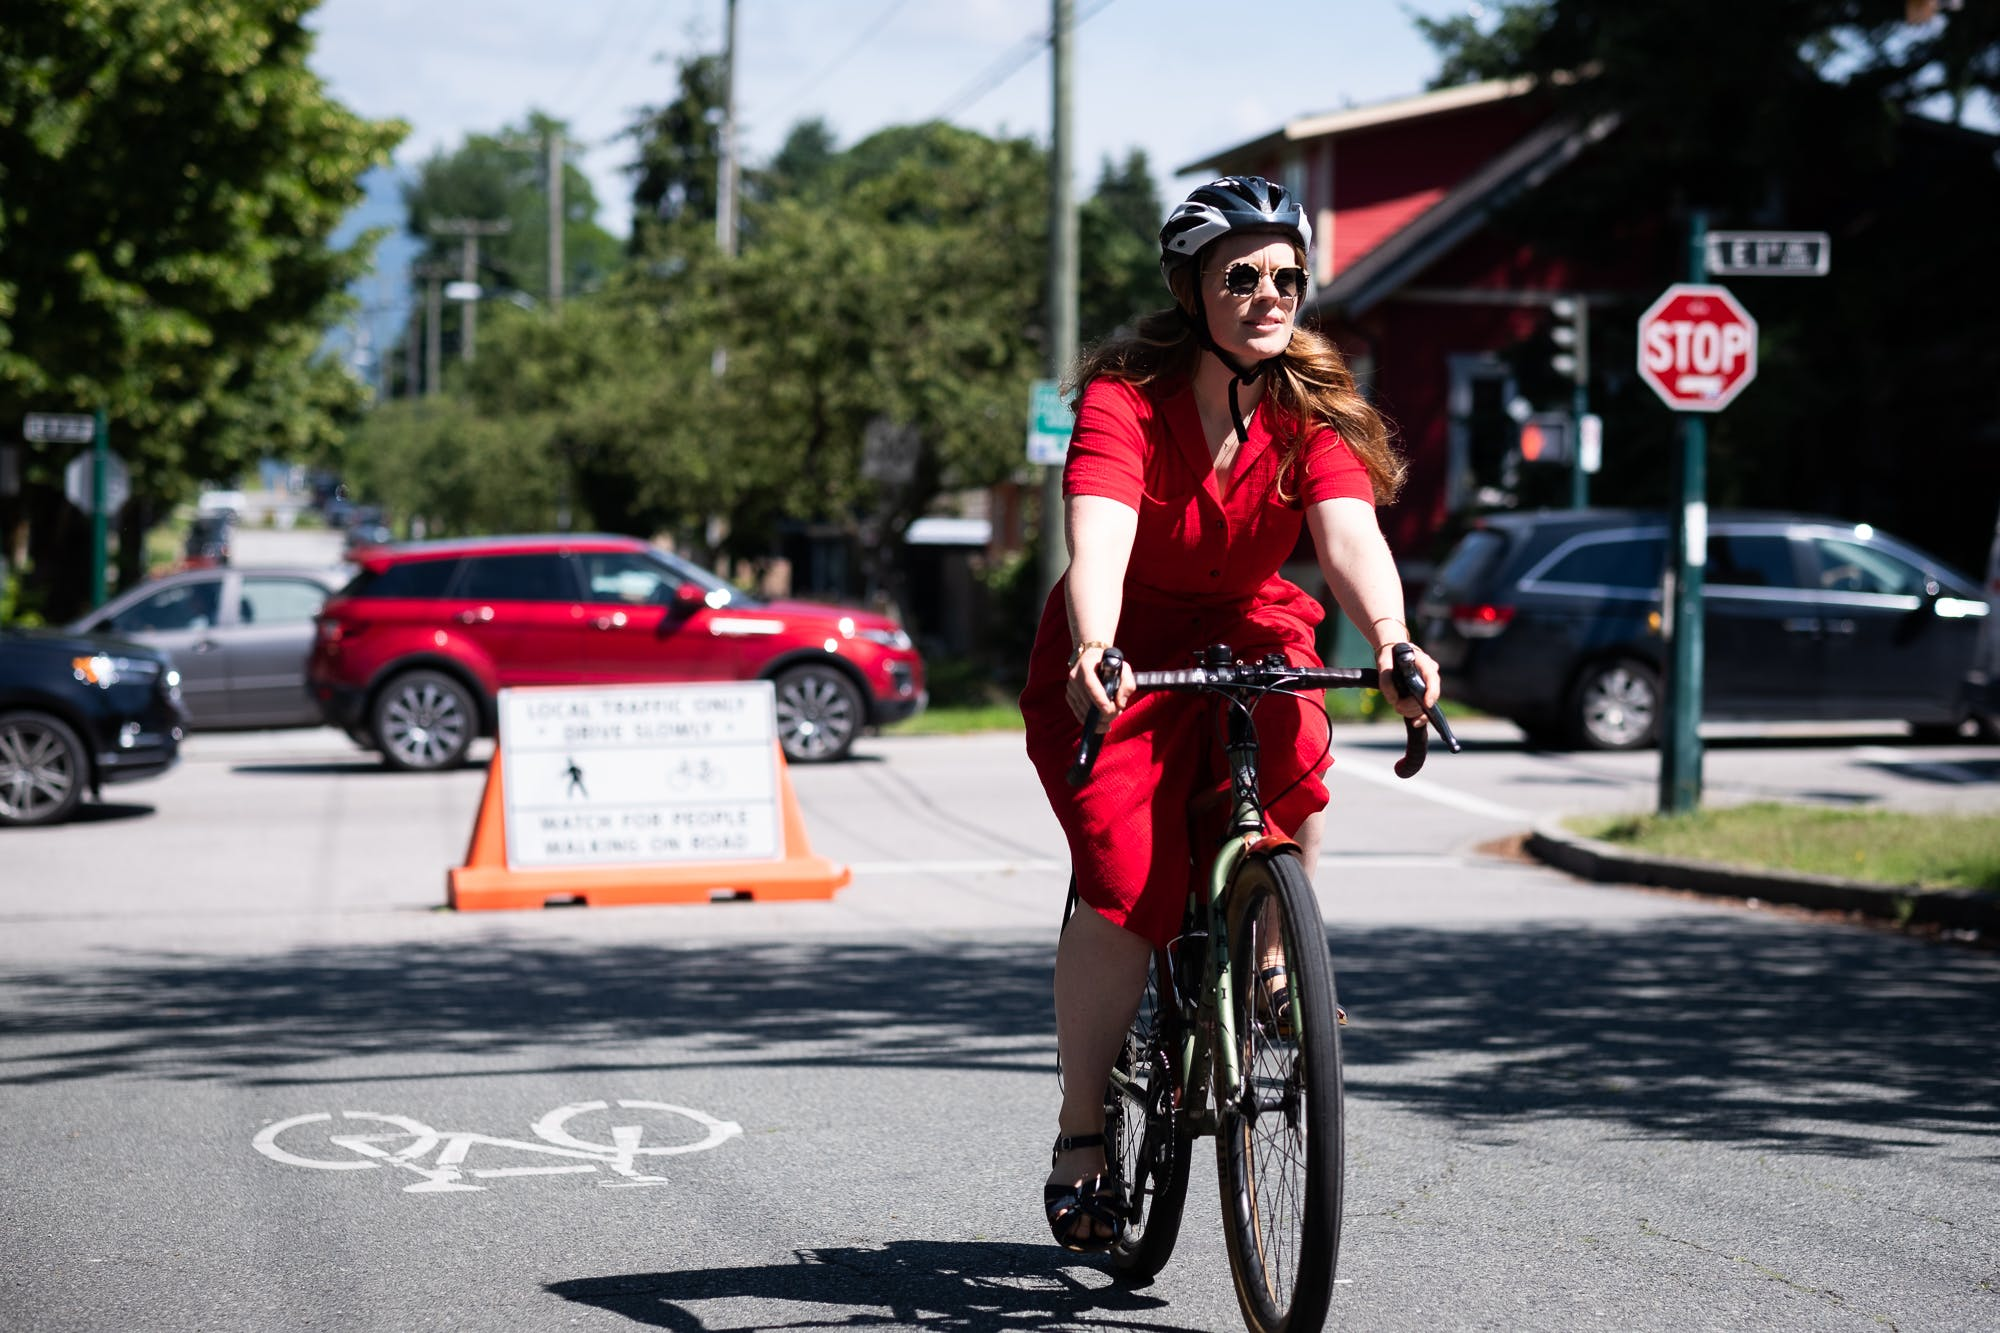 A cyclist in a red dress comfortably cycling along Slow Streets - Lakewood Drive.